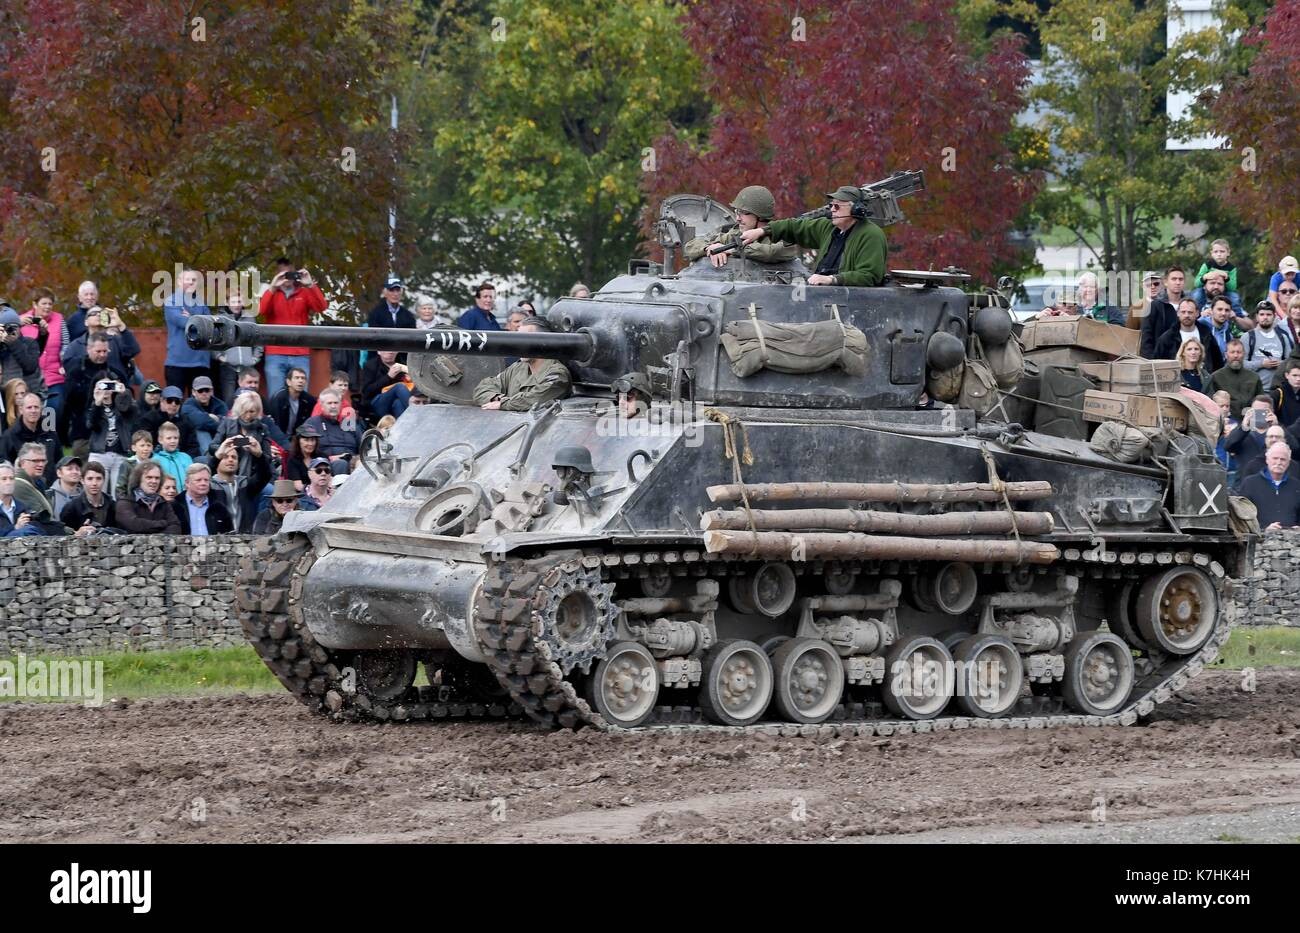 Demonstration at Bovington Tank Museum of the M4 Sherman from the film Fury - Stock Image